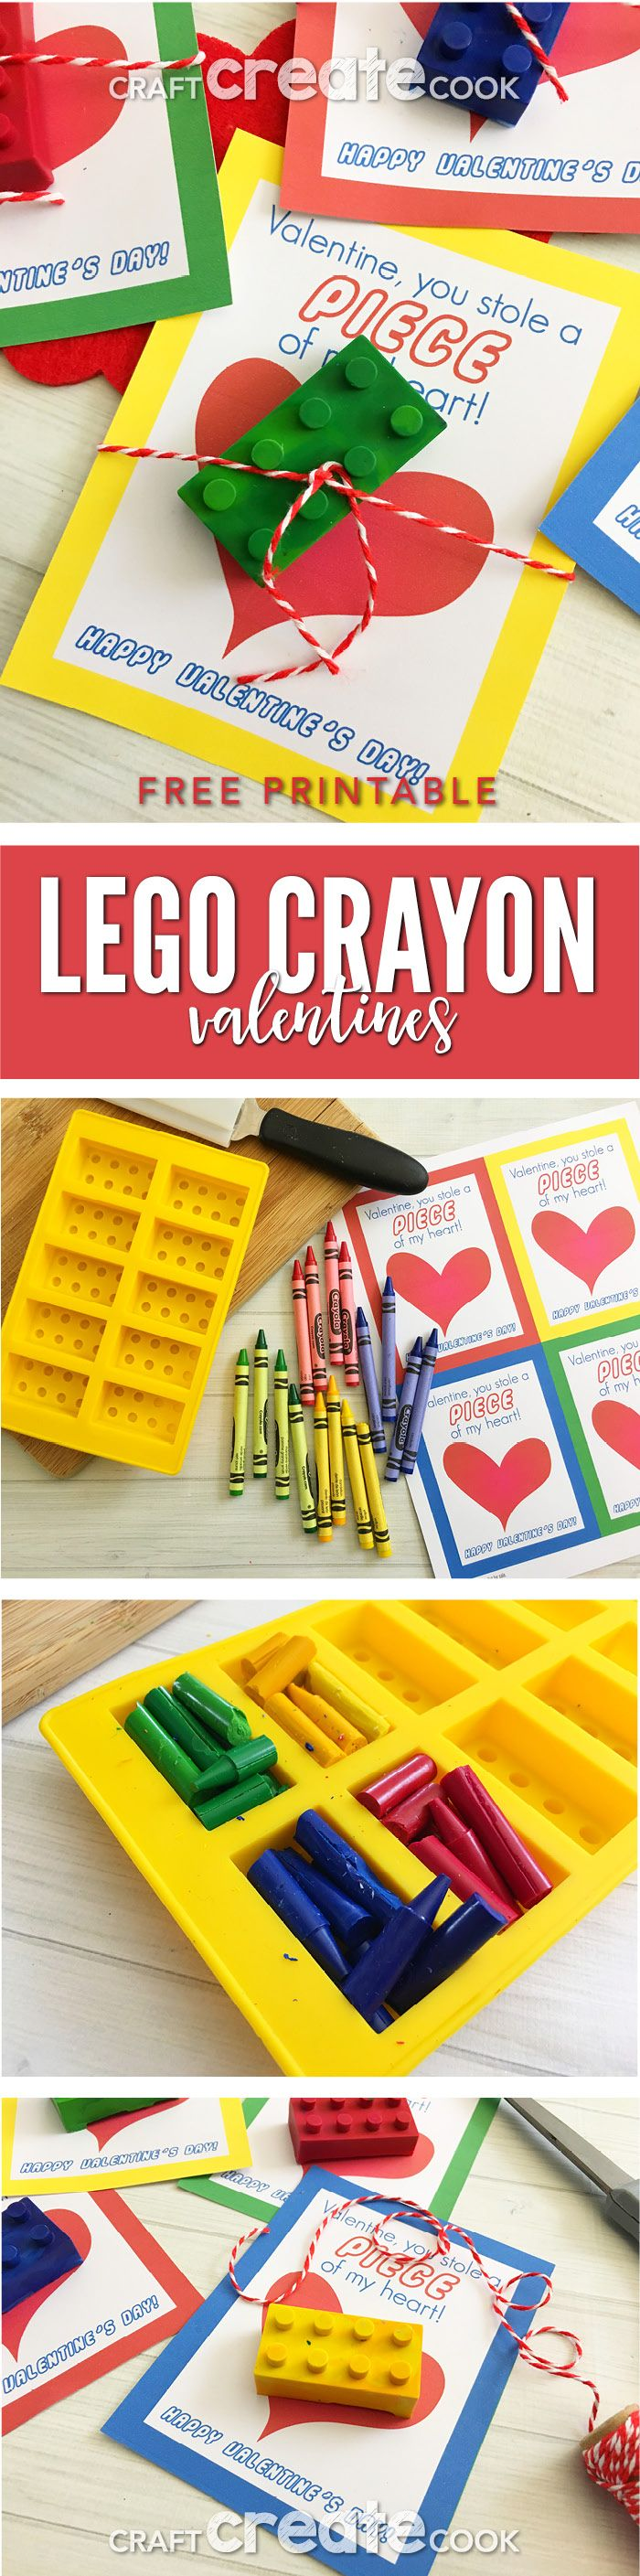 Your little Lego fans will love these DIY Lego Crayons - Free Printable Lego Valentine Cards. via @CraftCreatCook1